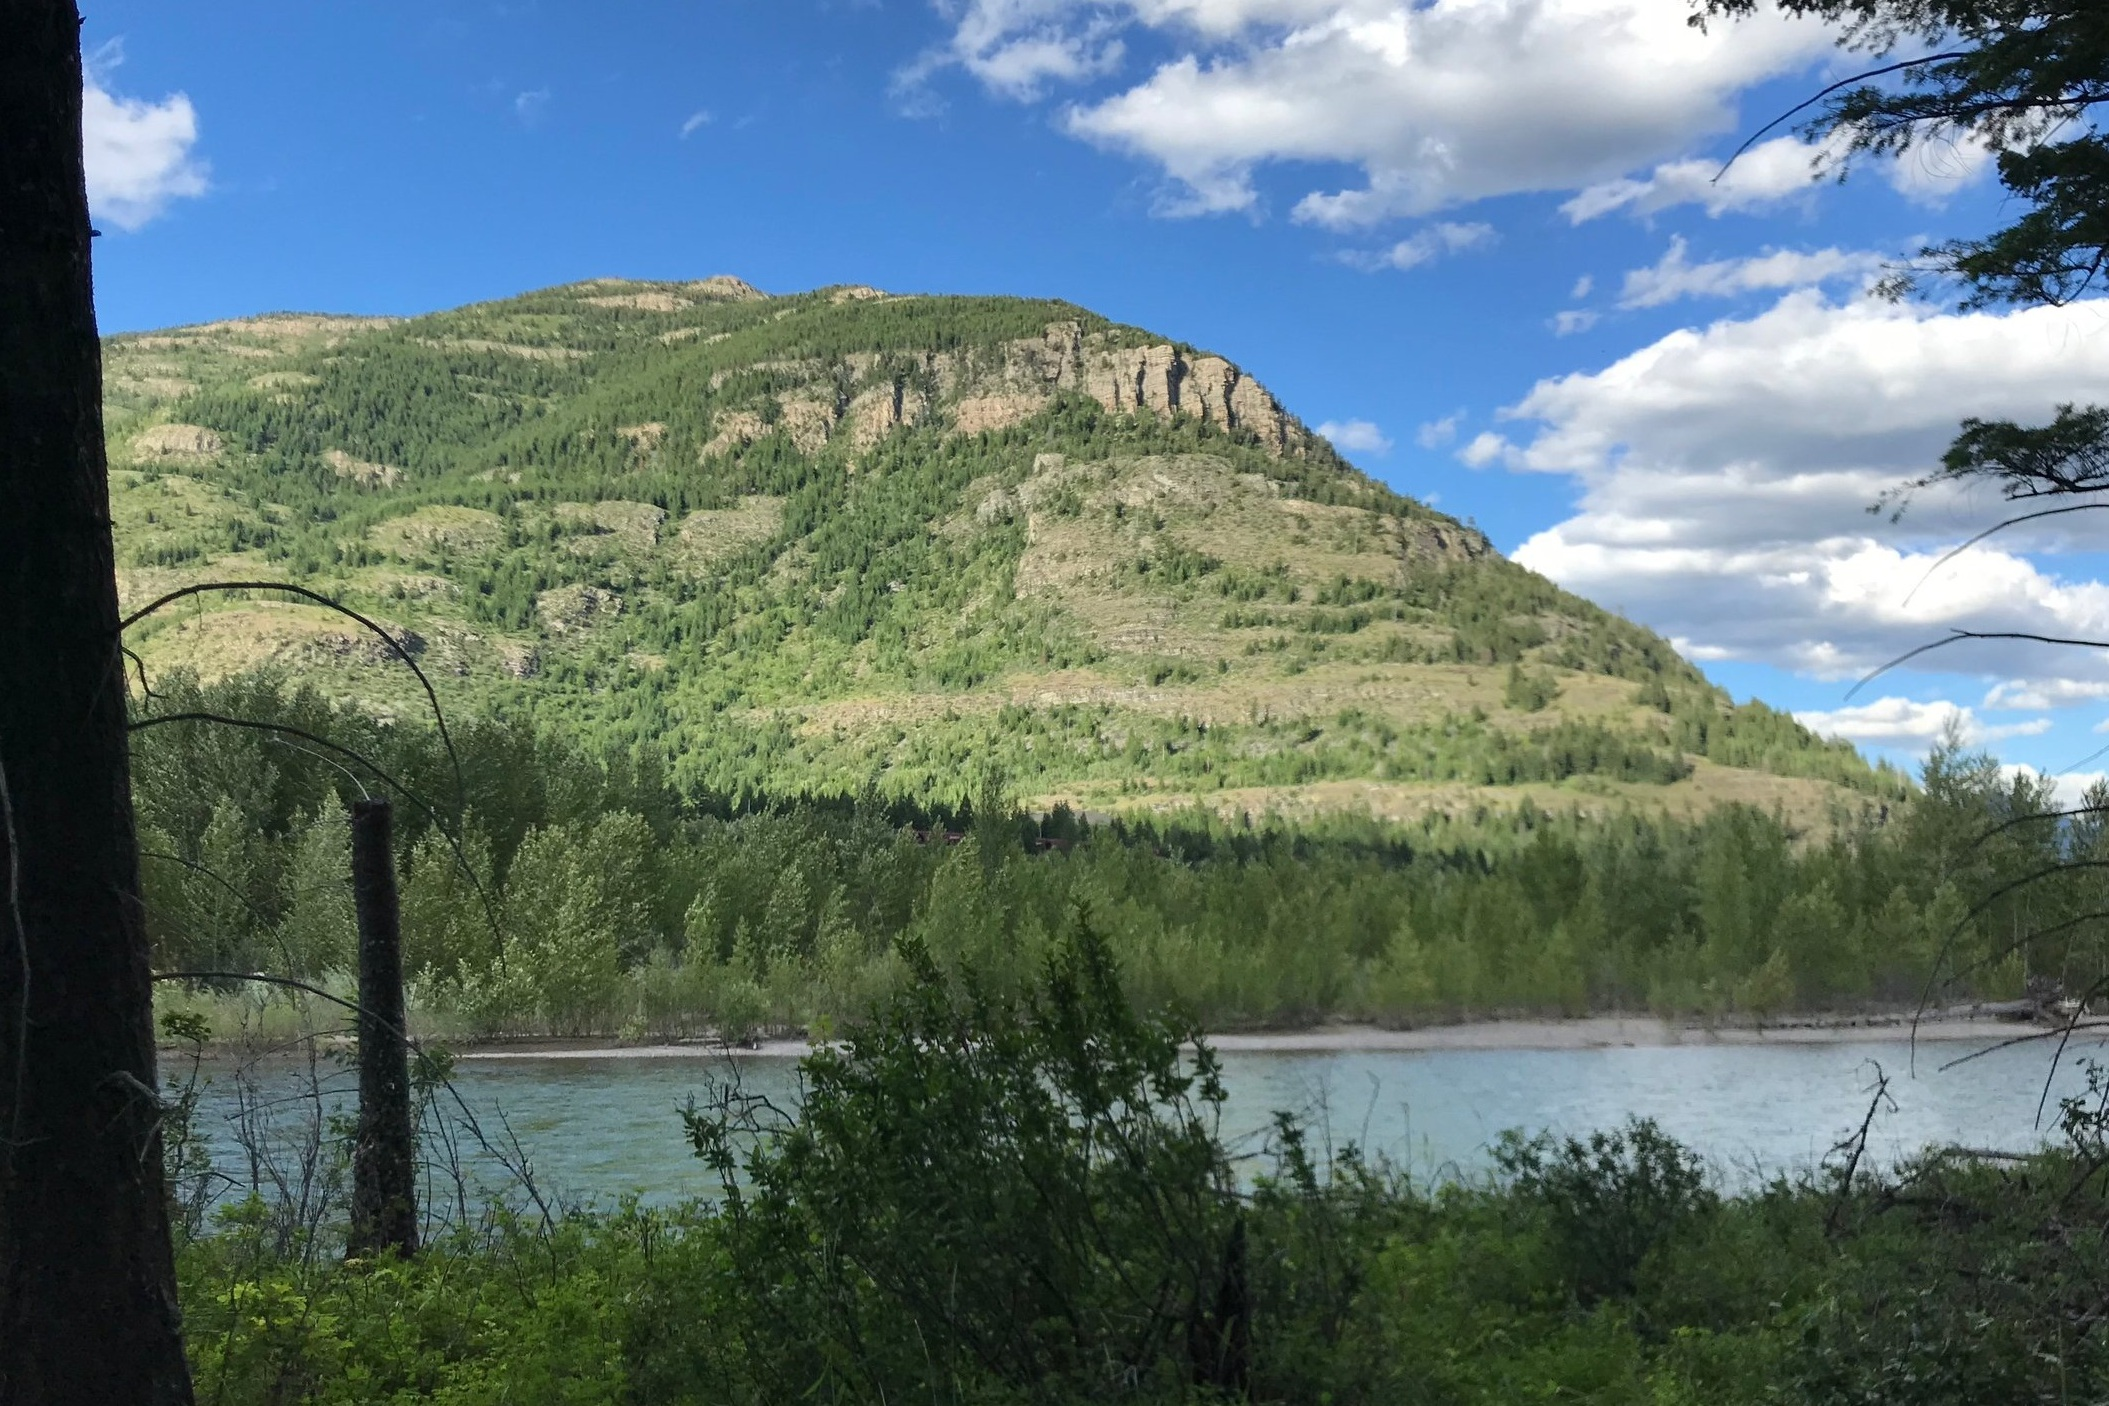 The columbia Falls River trail - A planned primitive trail following the Flathead River, connecting Columbia Falls to Badrock Canyon